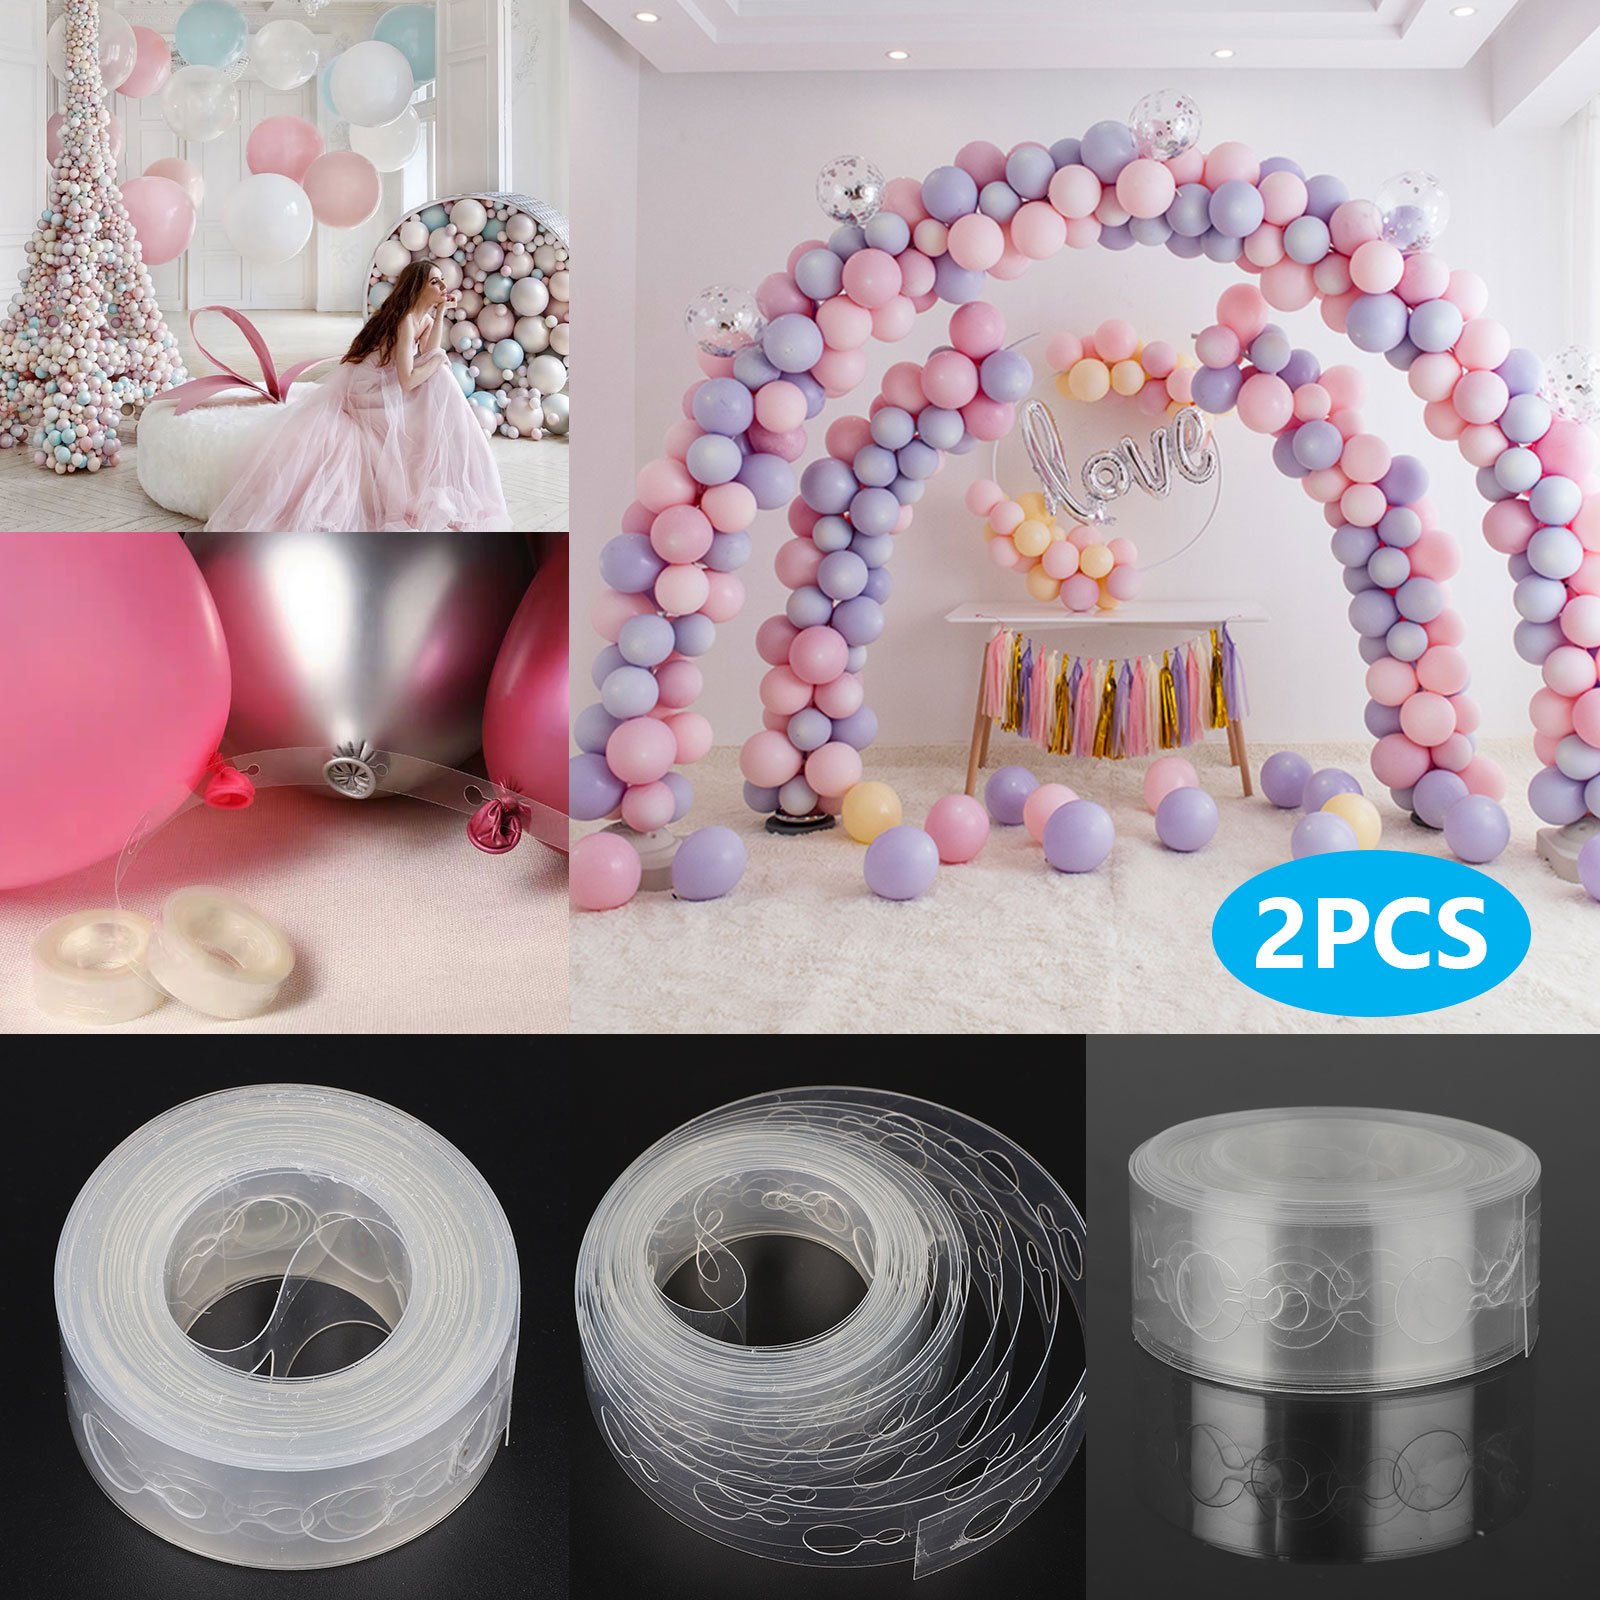 16 Feet Party Decoration Balloons Strips DIY Garland Connect Strings Tape Arch